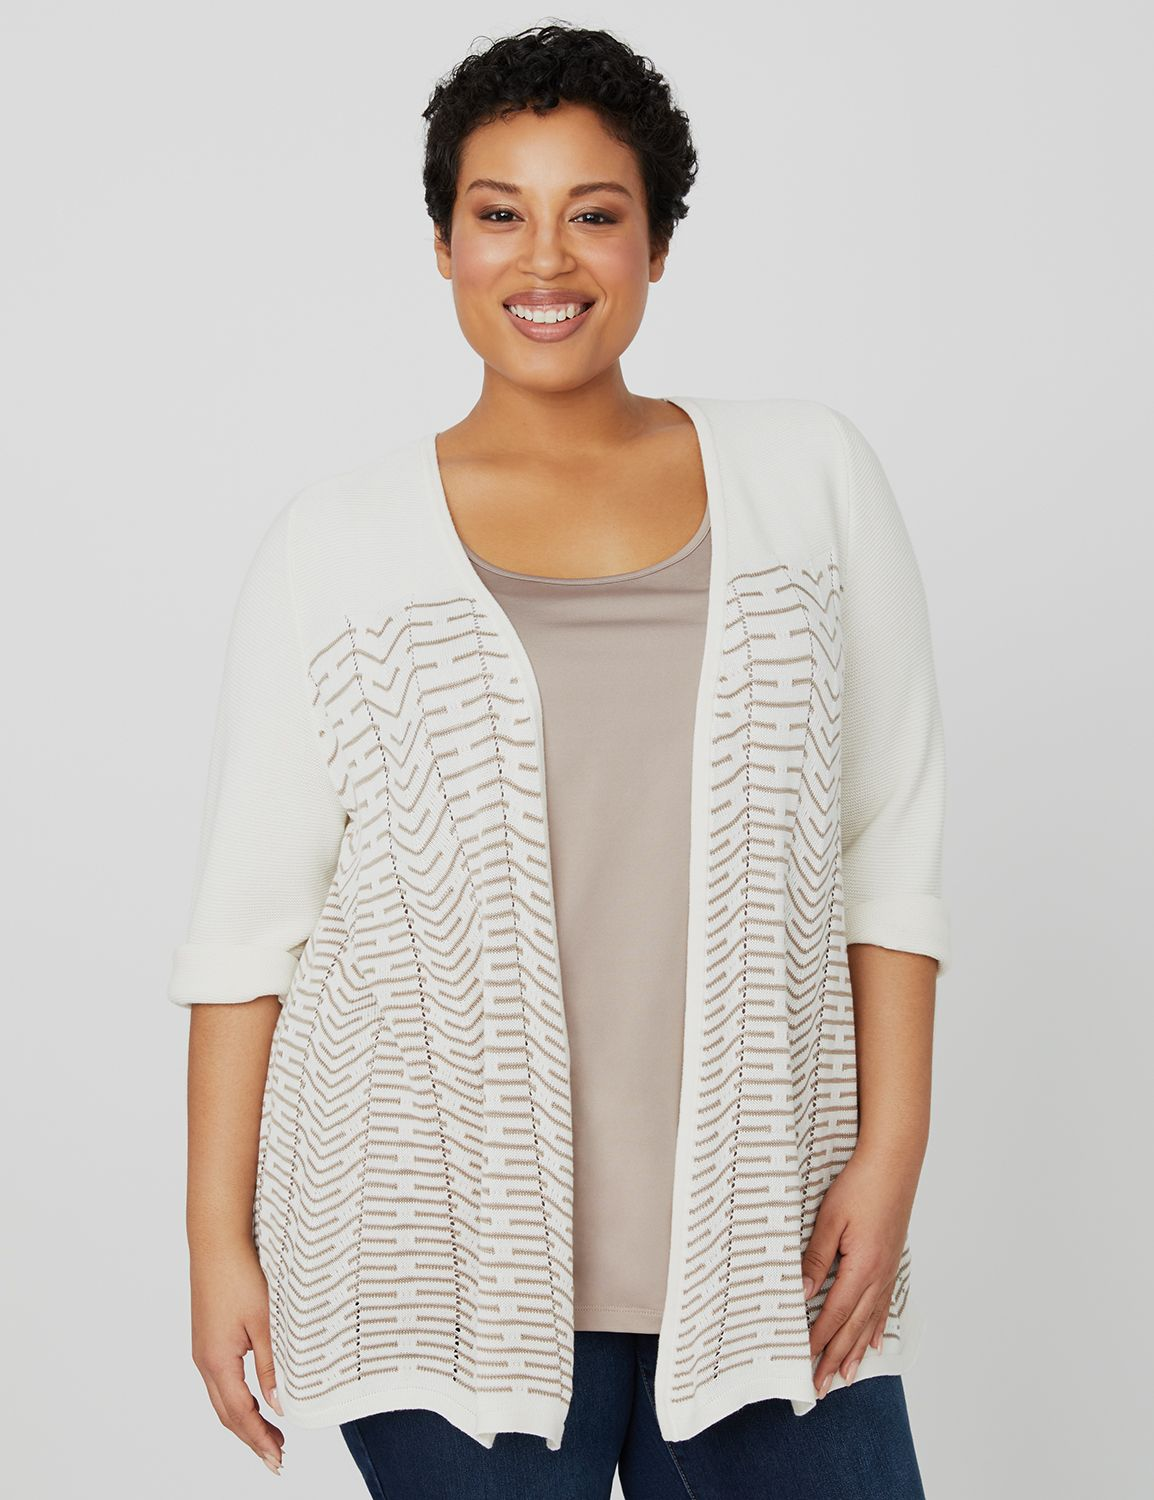 Peaceful Wave Cardigan 1087941 WaveStitch OpenCardi MP-300095849